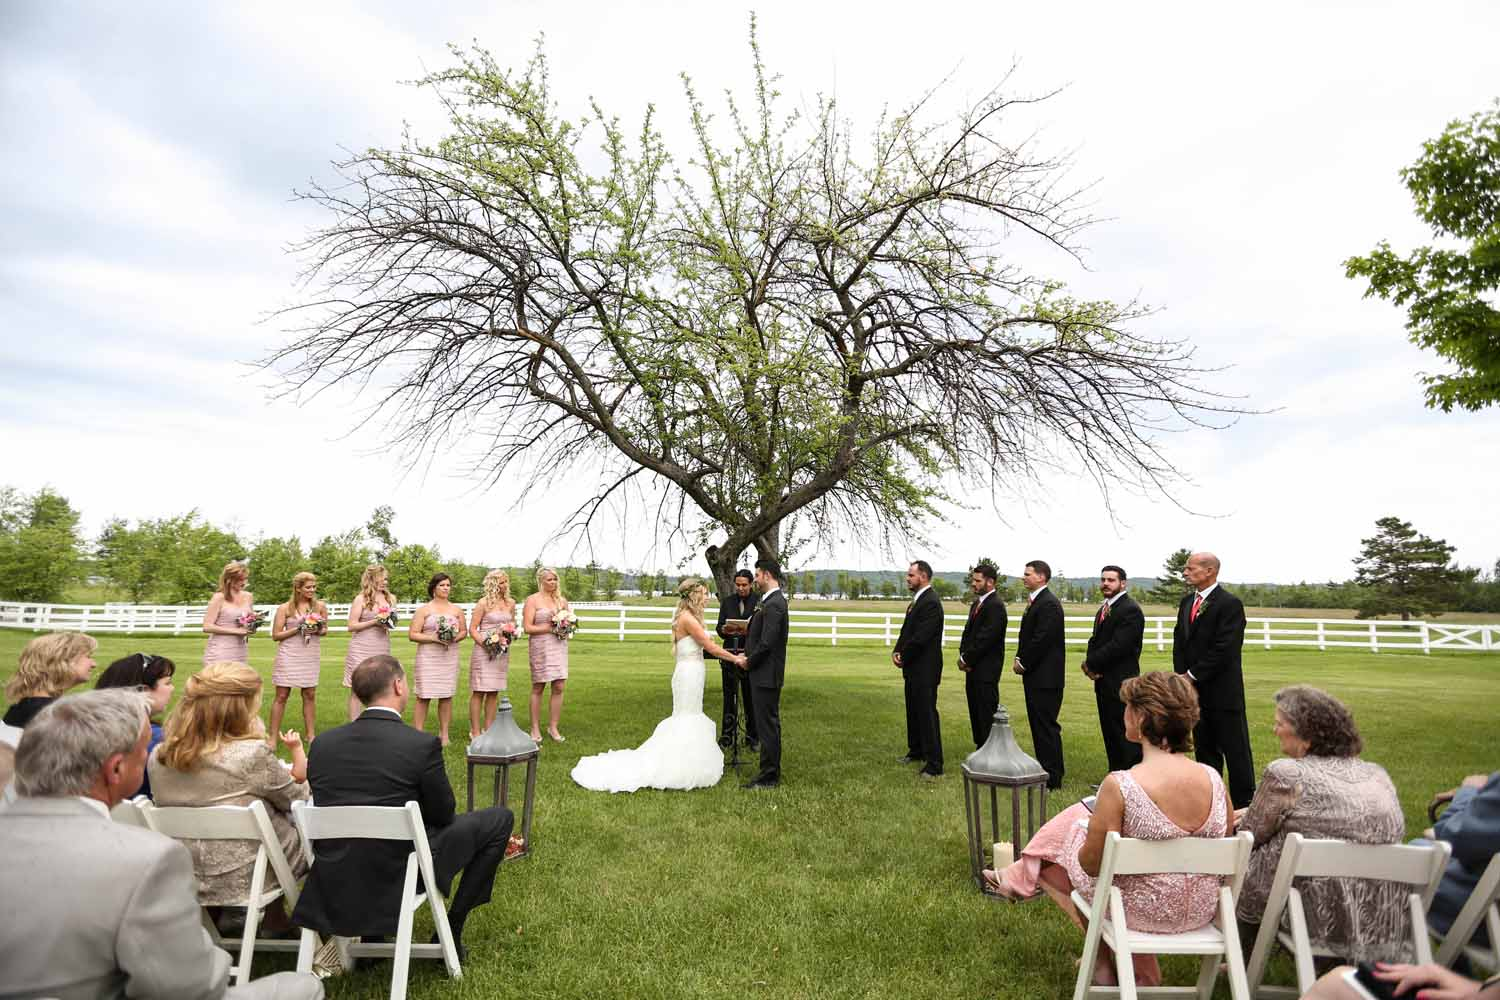 Field and Tree Ceremony | Northern MIchigan Outdoor Wedding | Tableau Events